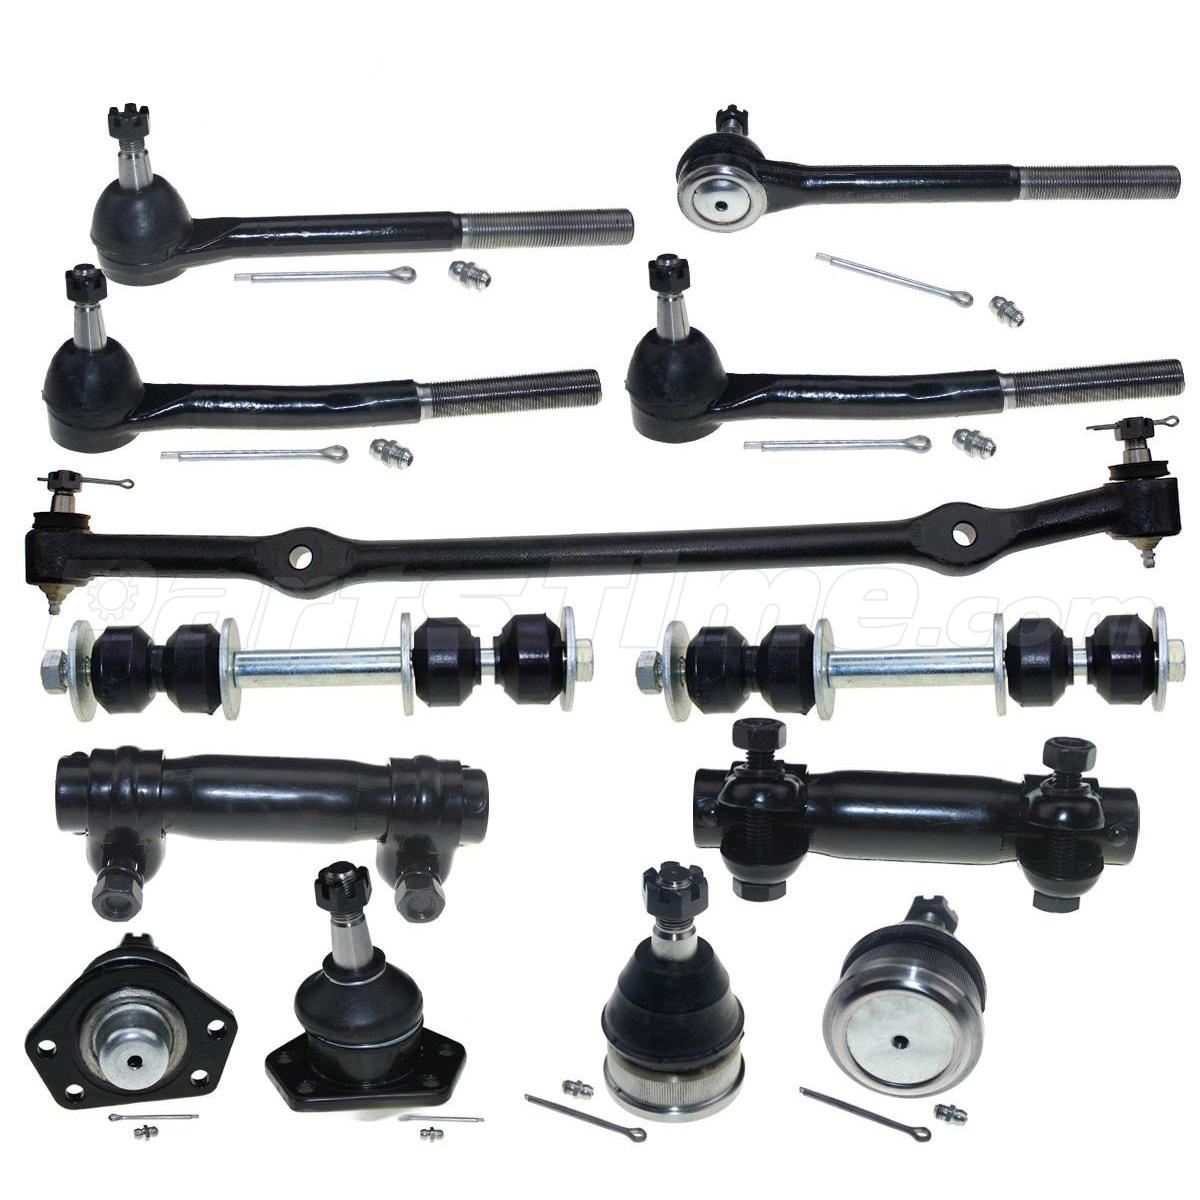 1996 Oldsmobile 98 Suspension: For 1977-1996 Chevrolet Caprice Ball Joint Tie Rod Sway